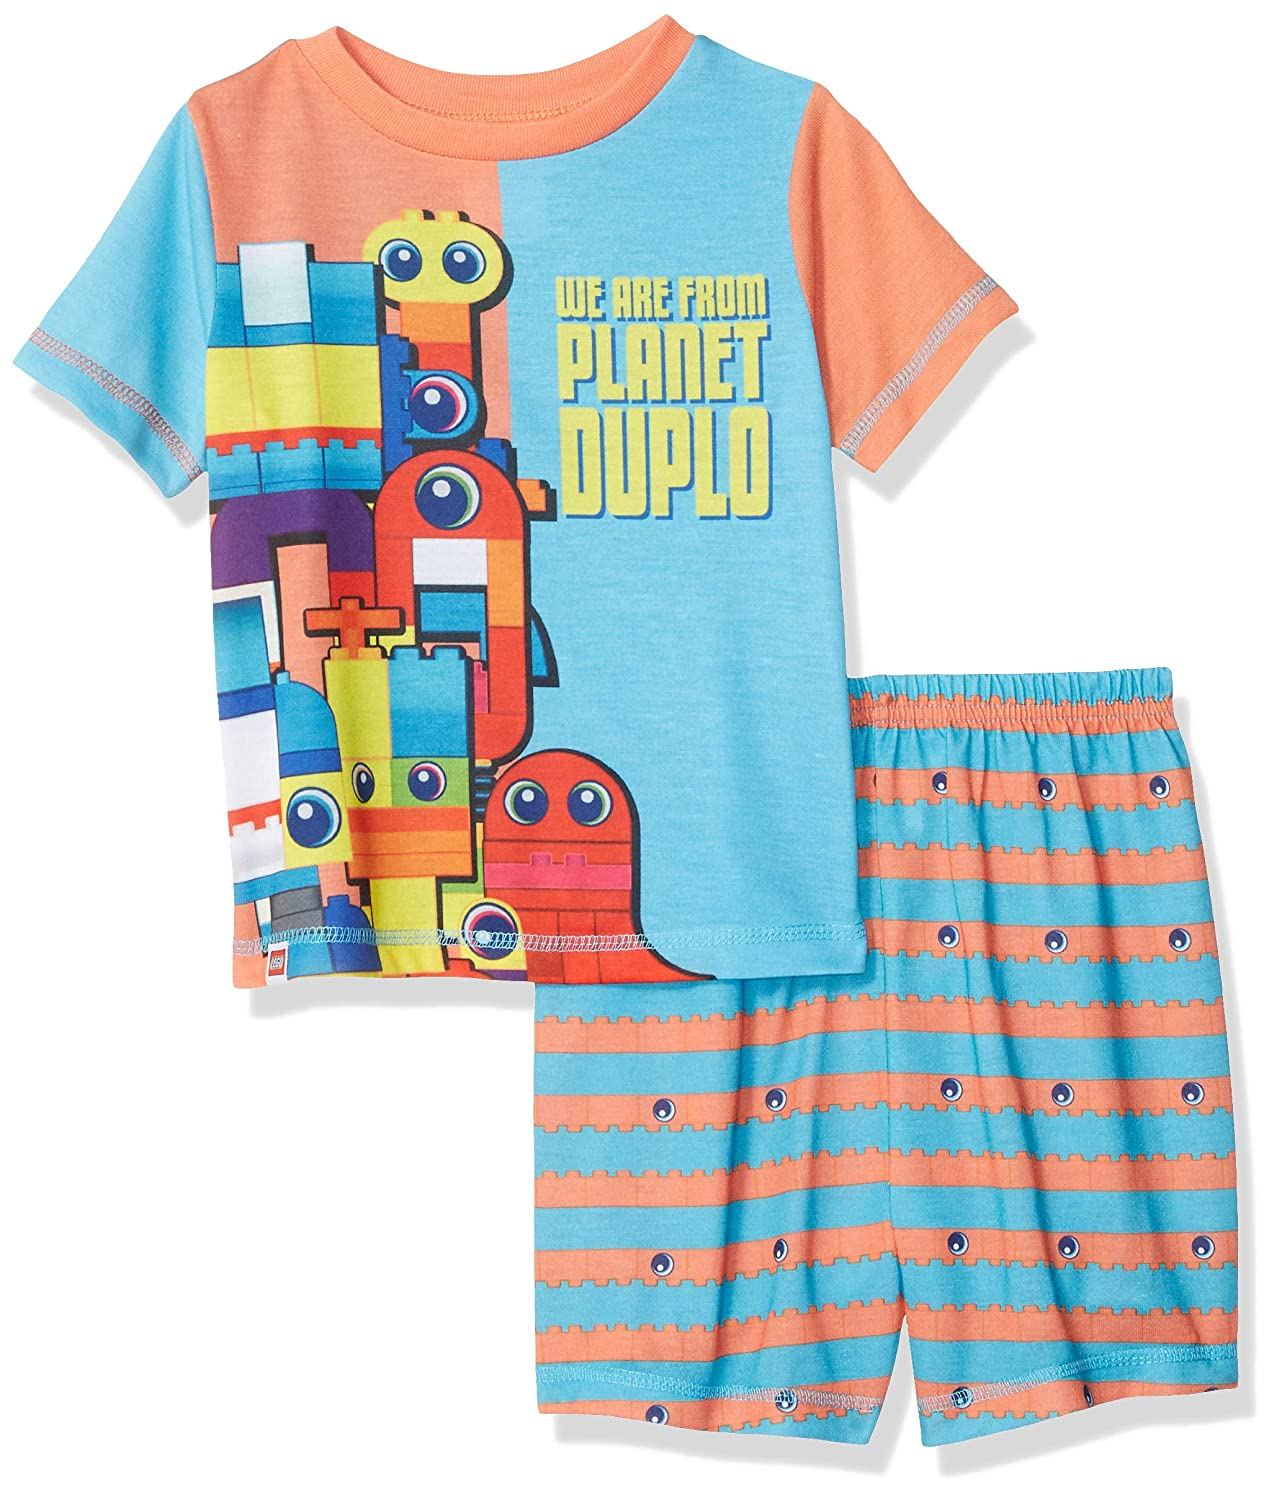 LEGO Movie 2 Boys Pajama 2 Piece P J Set Short Sleeve